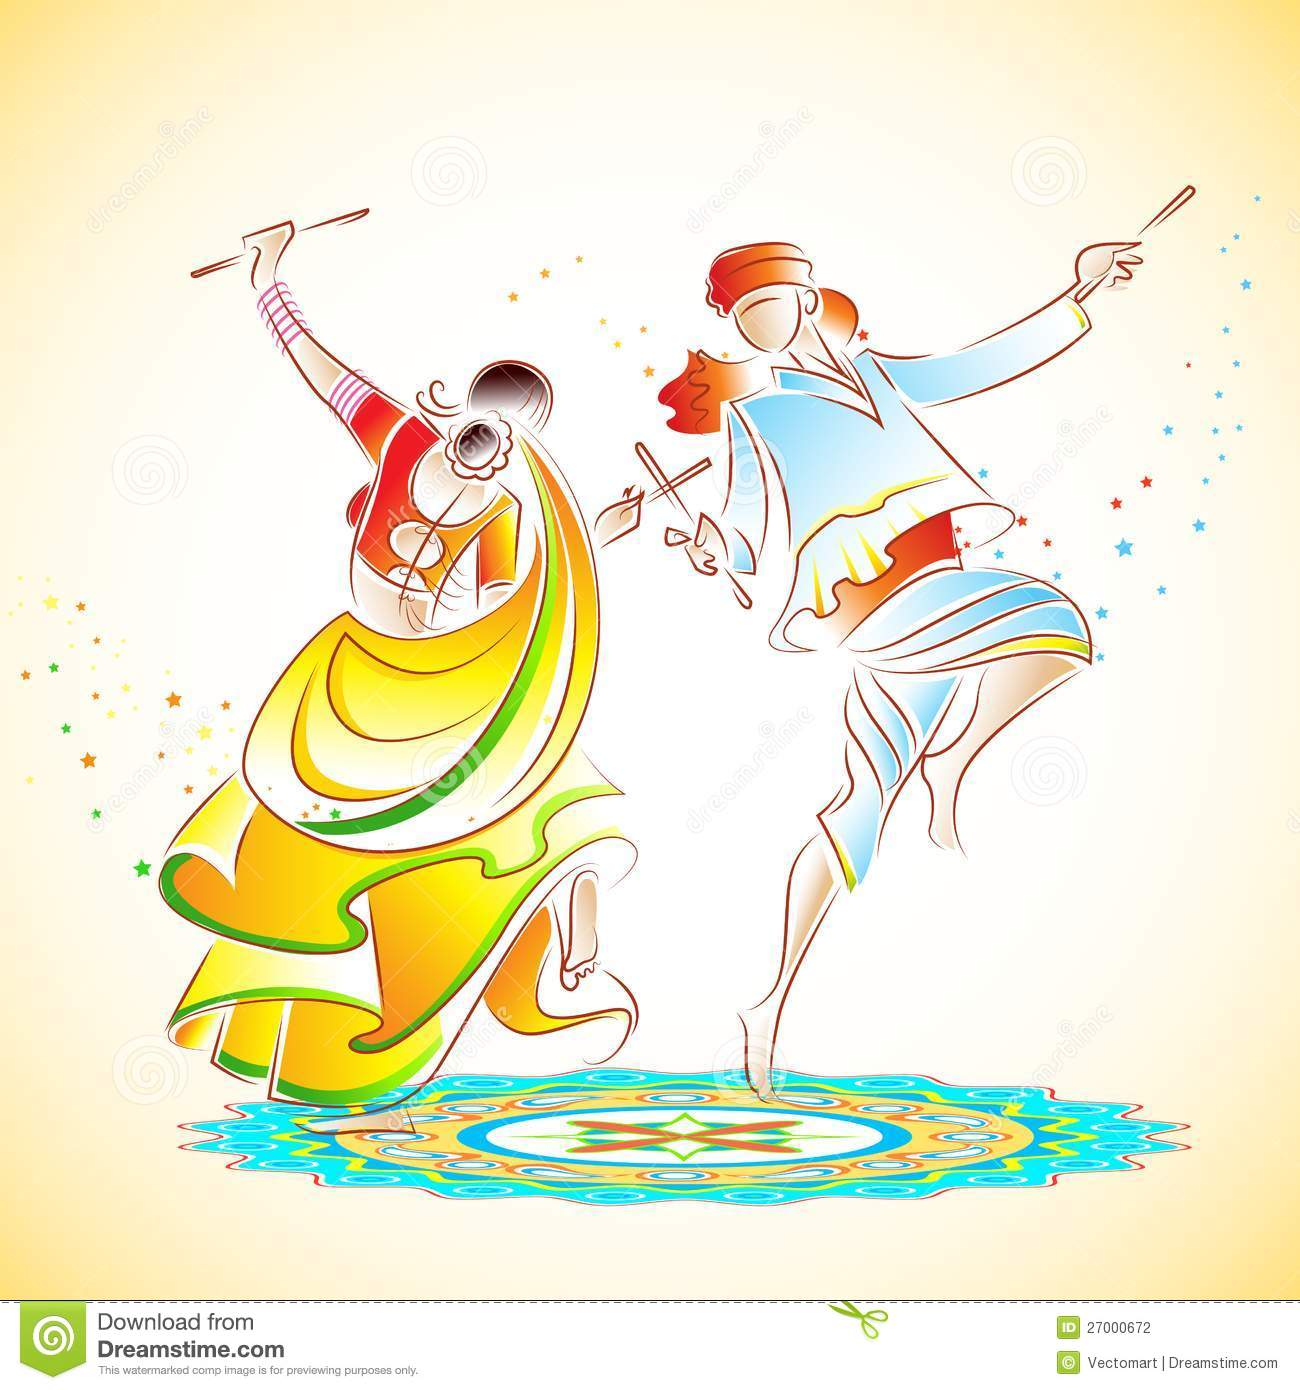 Dandiya Wallpaper: Pictures, Posters, News And Videos On Your